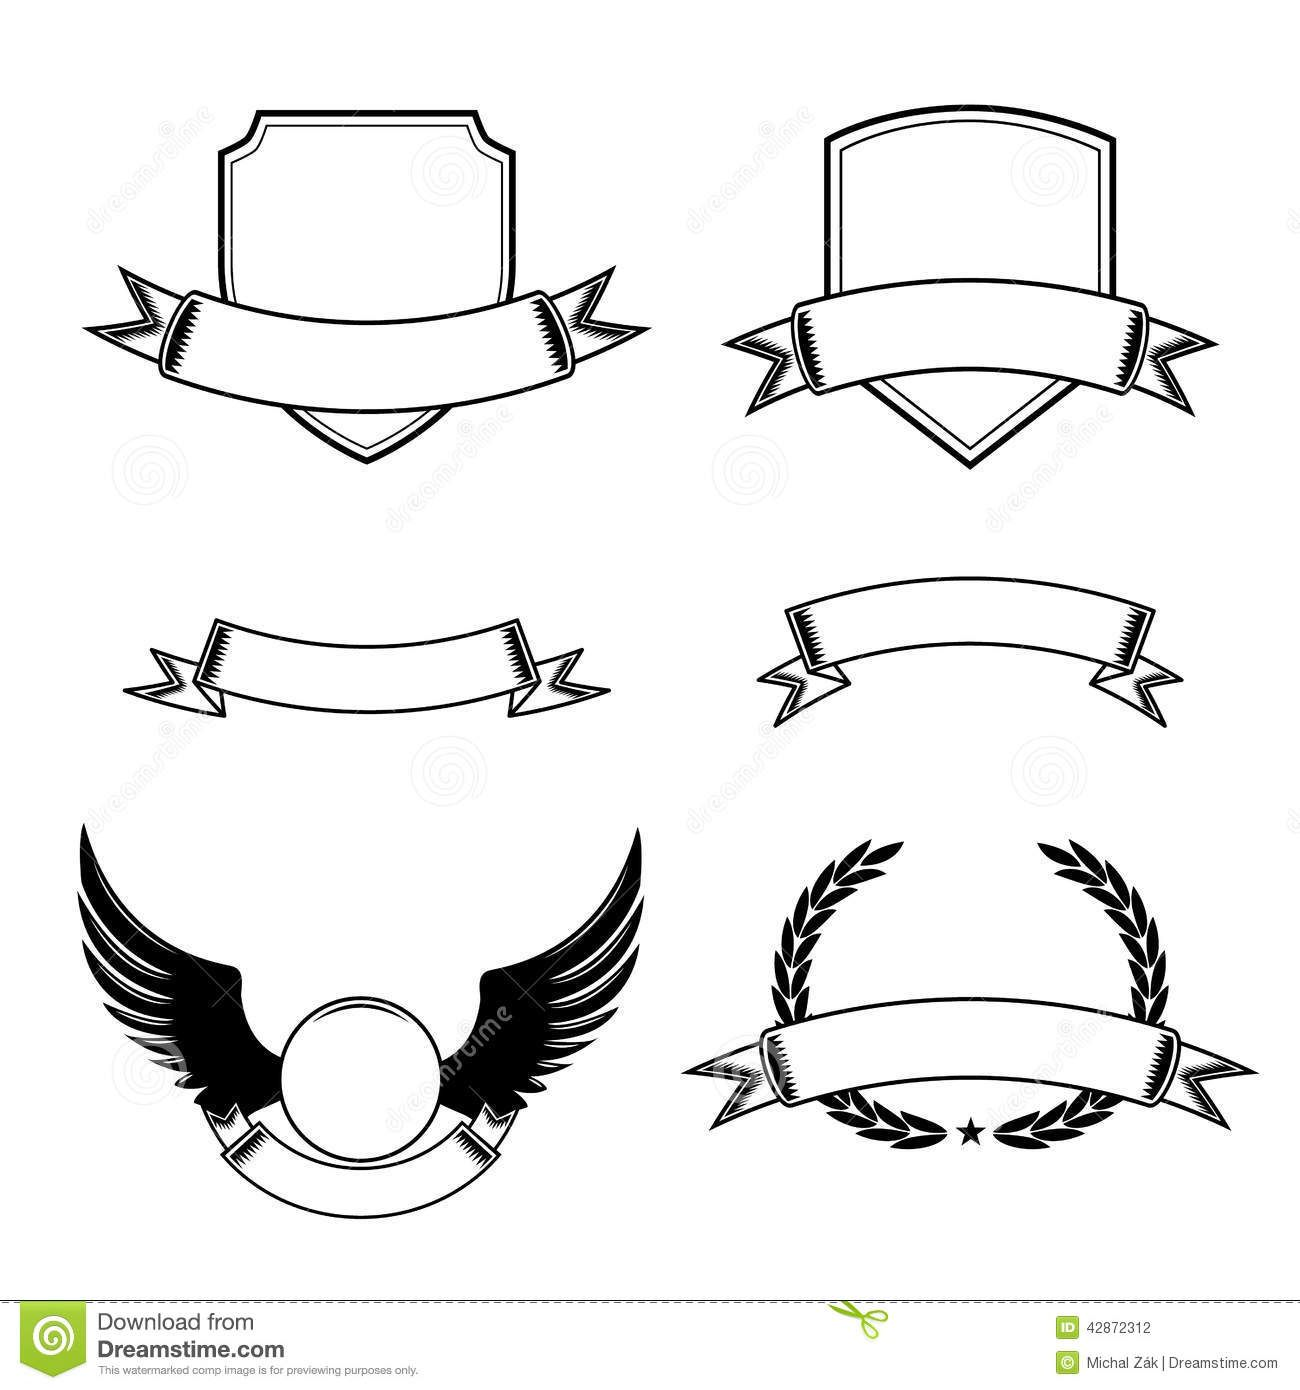 decorative frame templates - Google Search   beer logos for ...